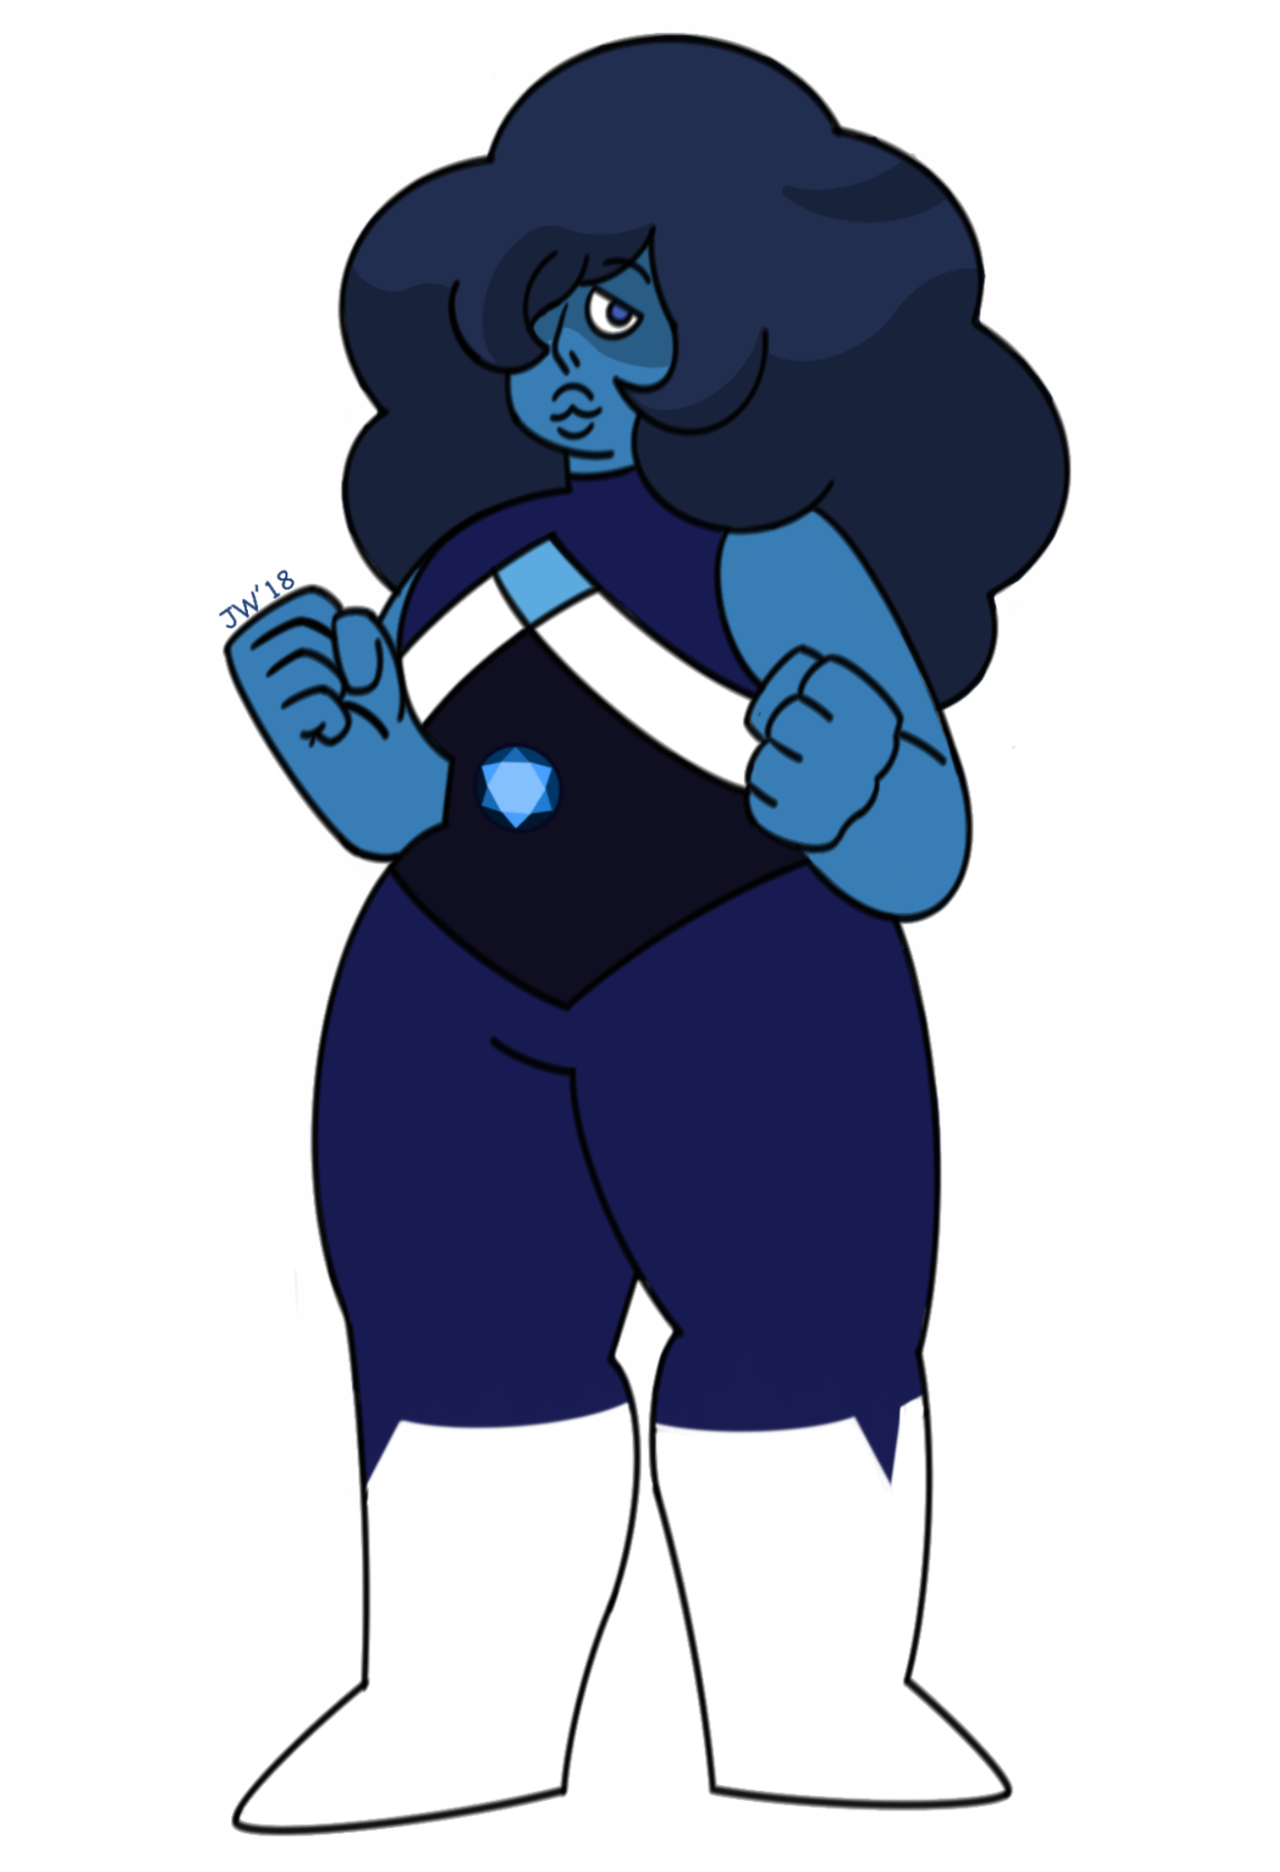 Cotton Candy Amethyst Orchid Diamond By Misticplies Steven Universe Characters Steven Universe Gem Pink Diamond Steven Universe